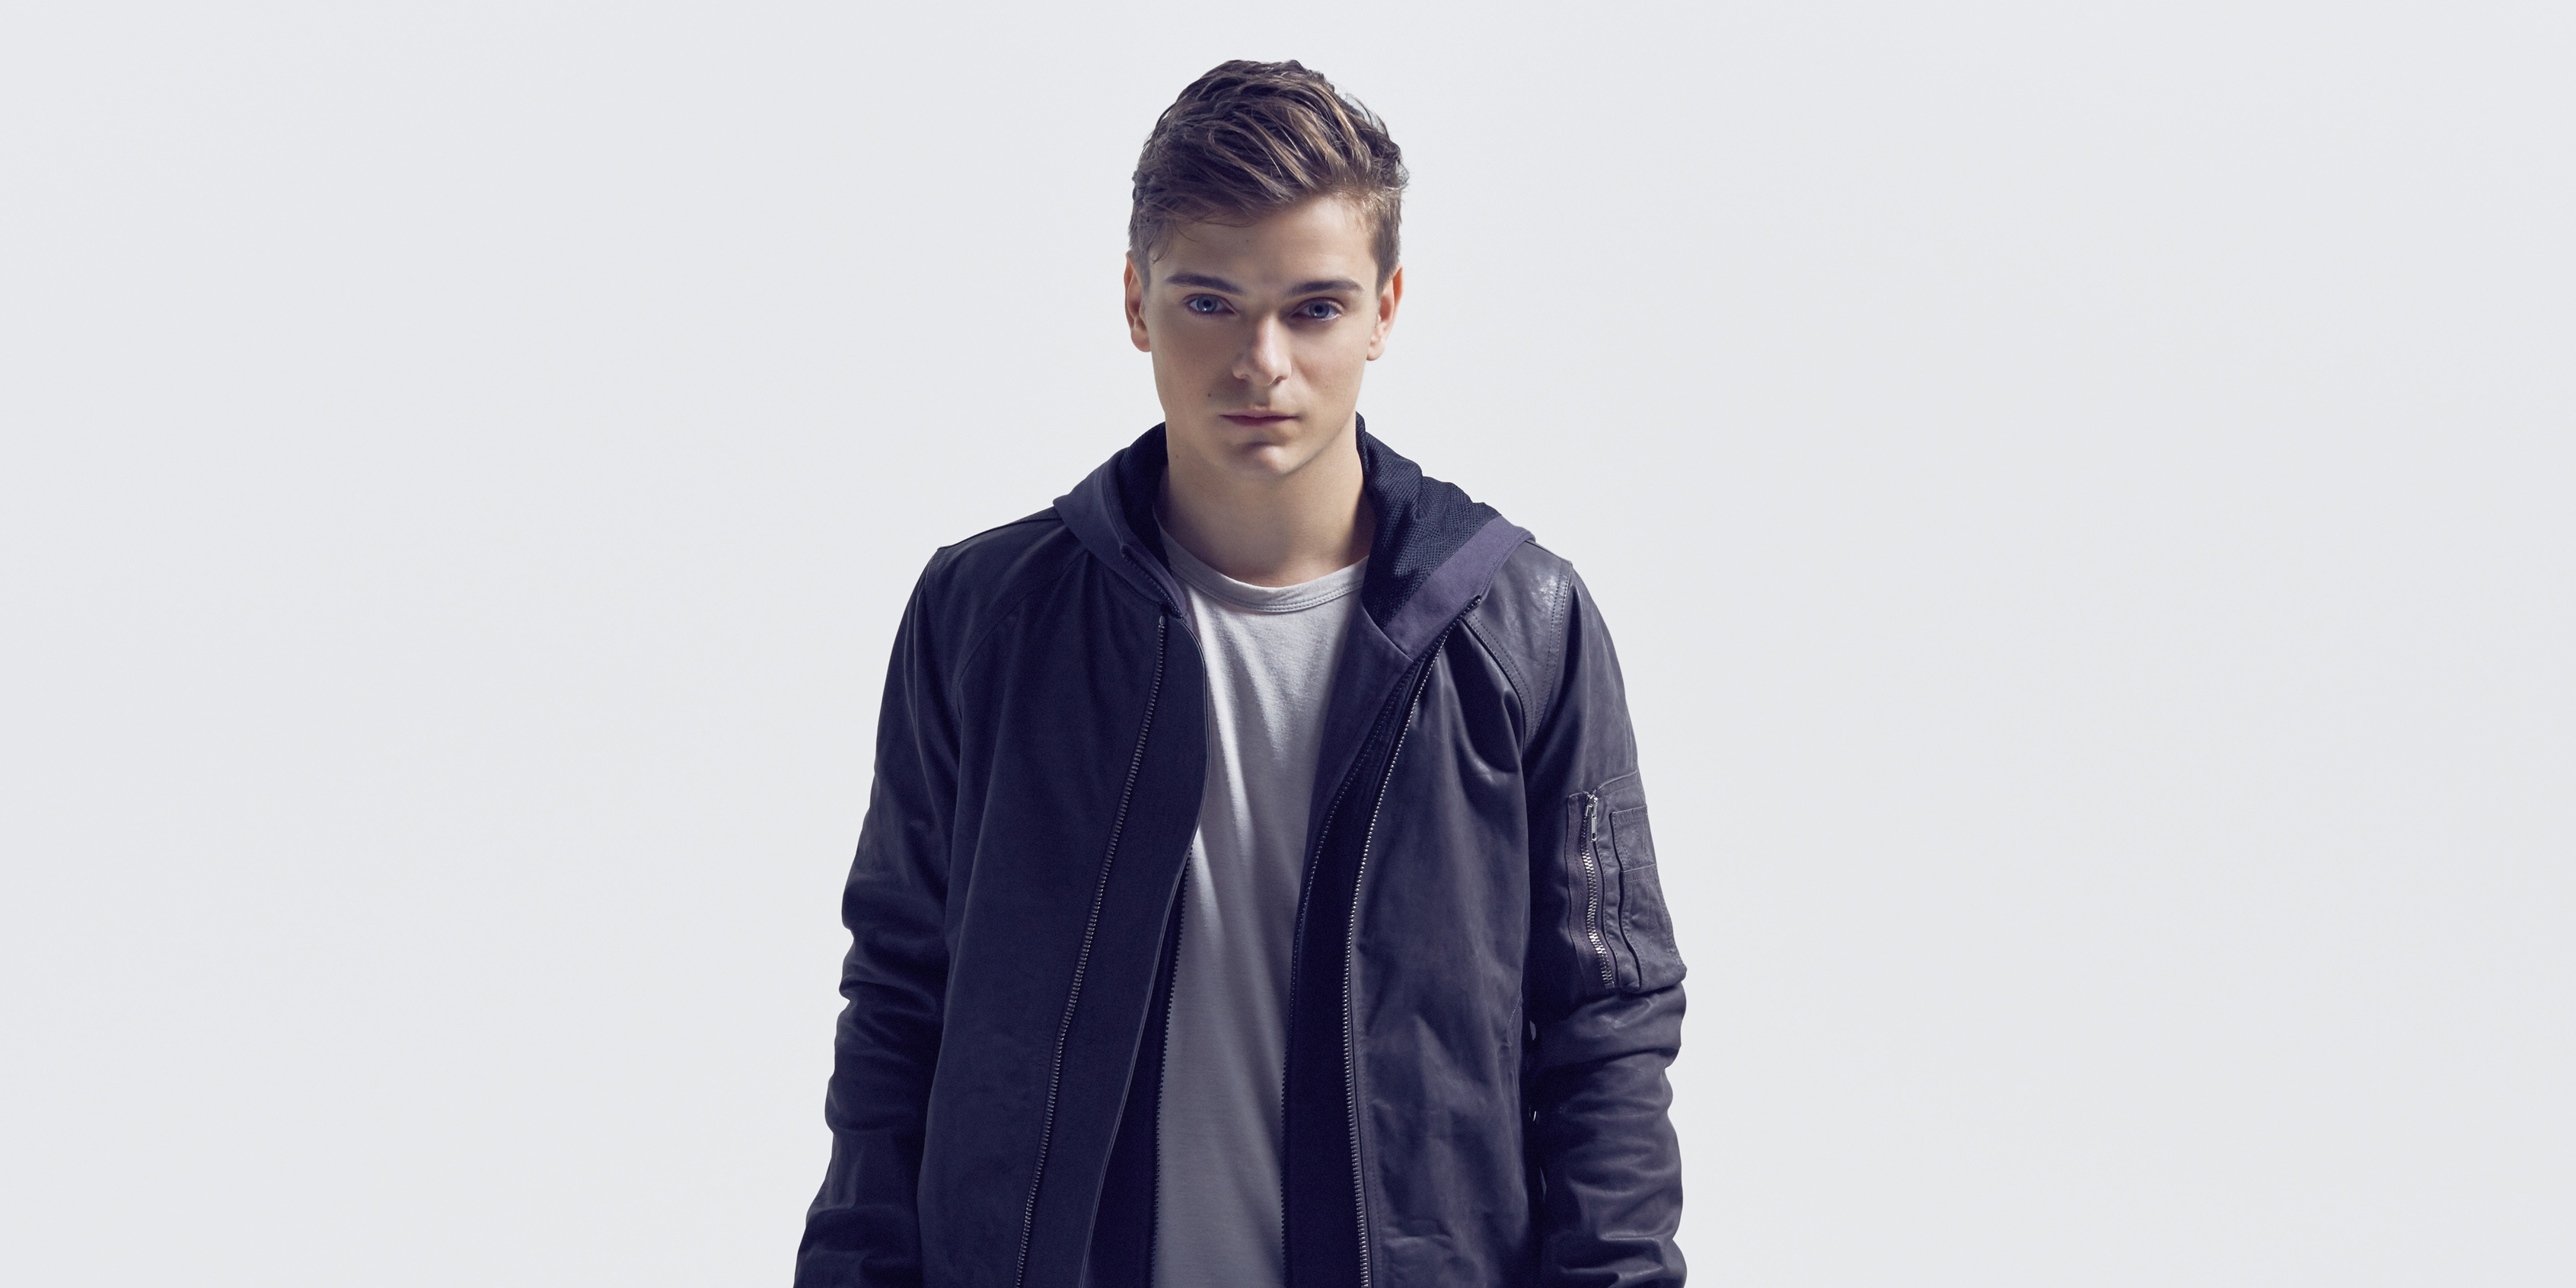 BREAKING: MARTIN GARRIX pulls out of Ultra Singapore, cancels all shows due to injury